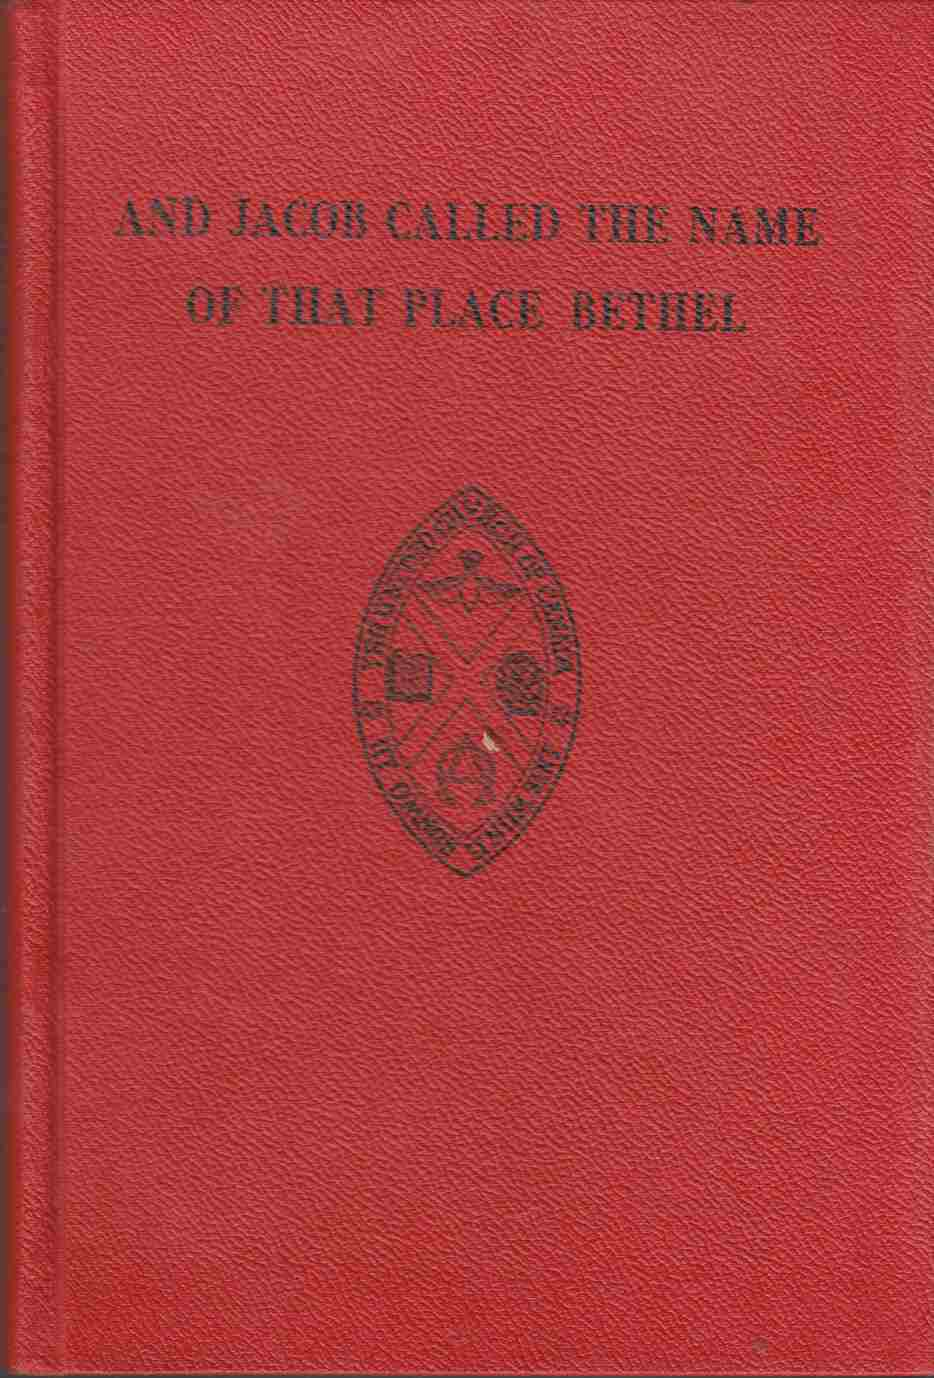 Image for And Jacob Called the Name of That Place Bethel